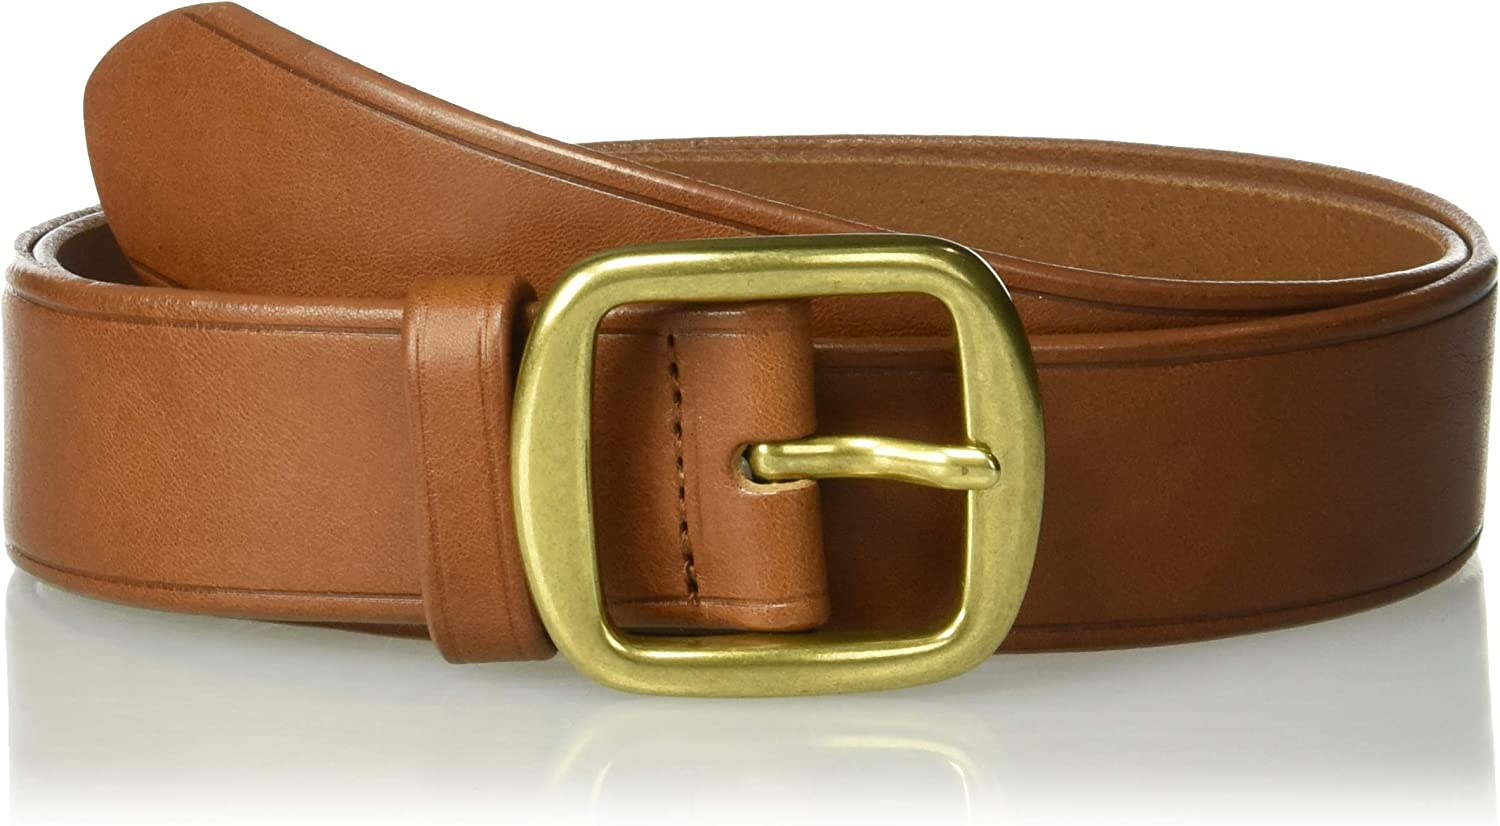 Circa Leathergoods womens Circa Womens Fully Adjustable Leather Belt With Oval Ring Belt